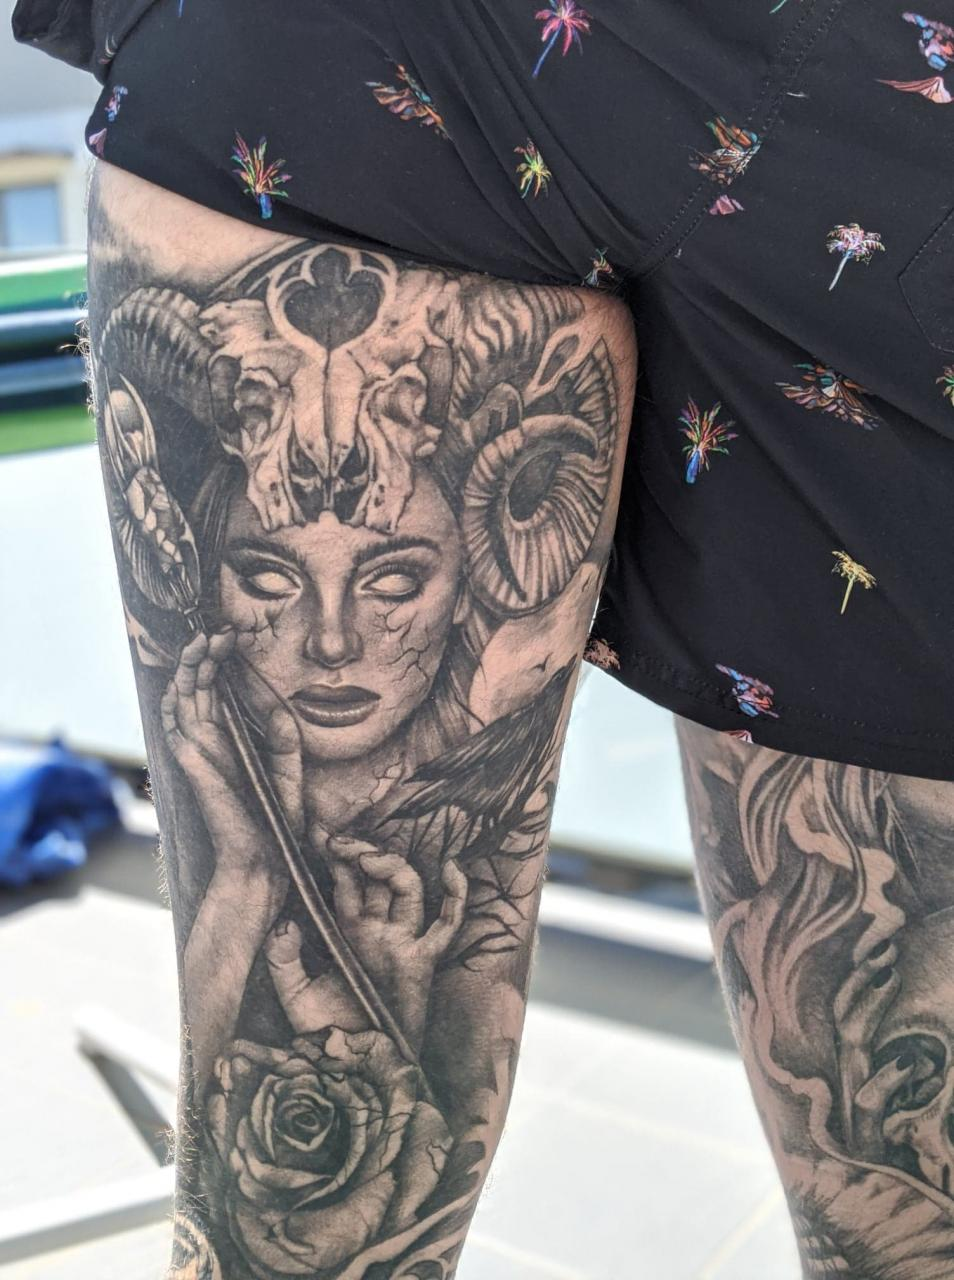 Back of my thigh (and last piece of my leg sleeves), the Occultist from Path of Exile. Done by Miss Kimberley at Garage Ink Manor in Gold Coast, AUS.